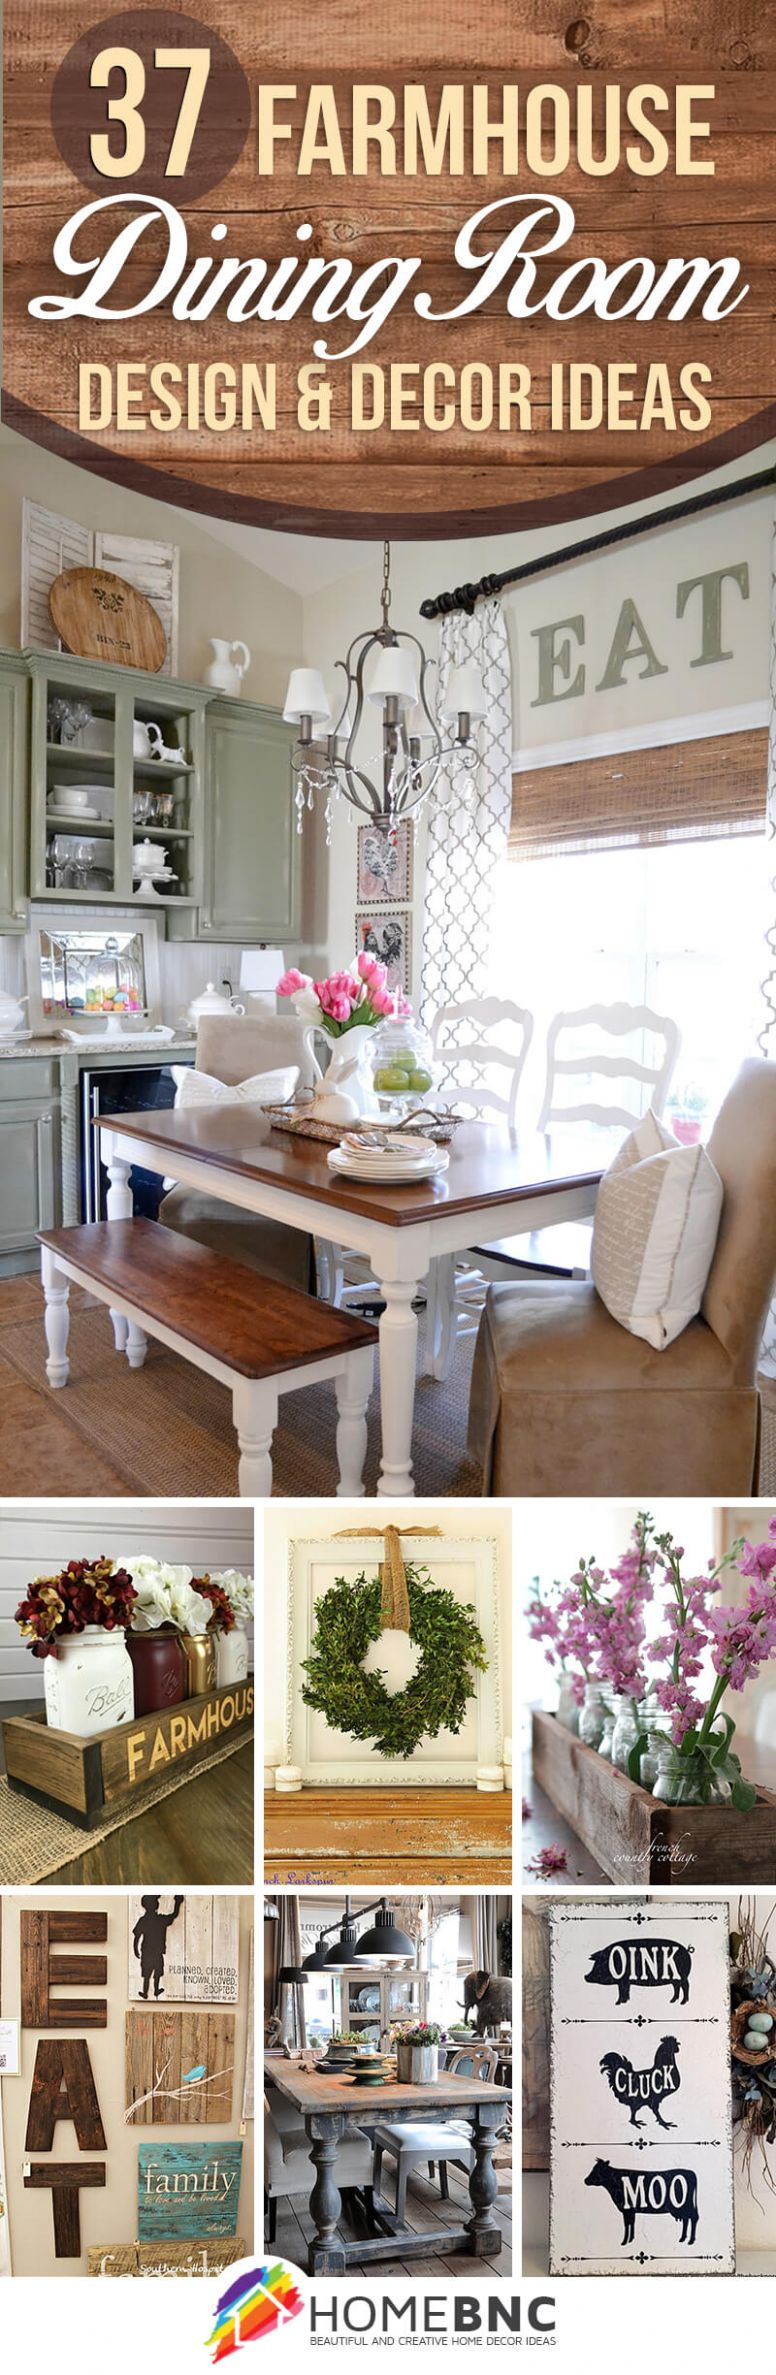 10 Best Farmhouse Dining Room Design and Decor Ideas for 10 - dining room ideas country style